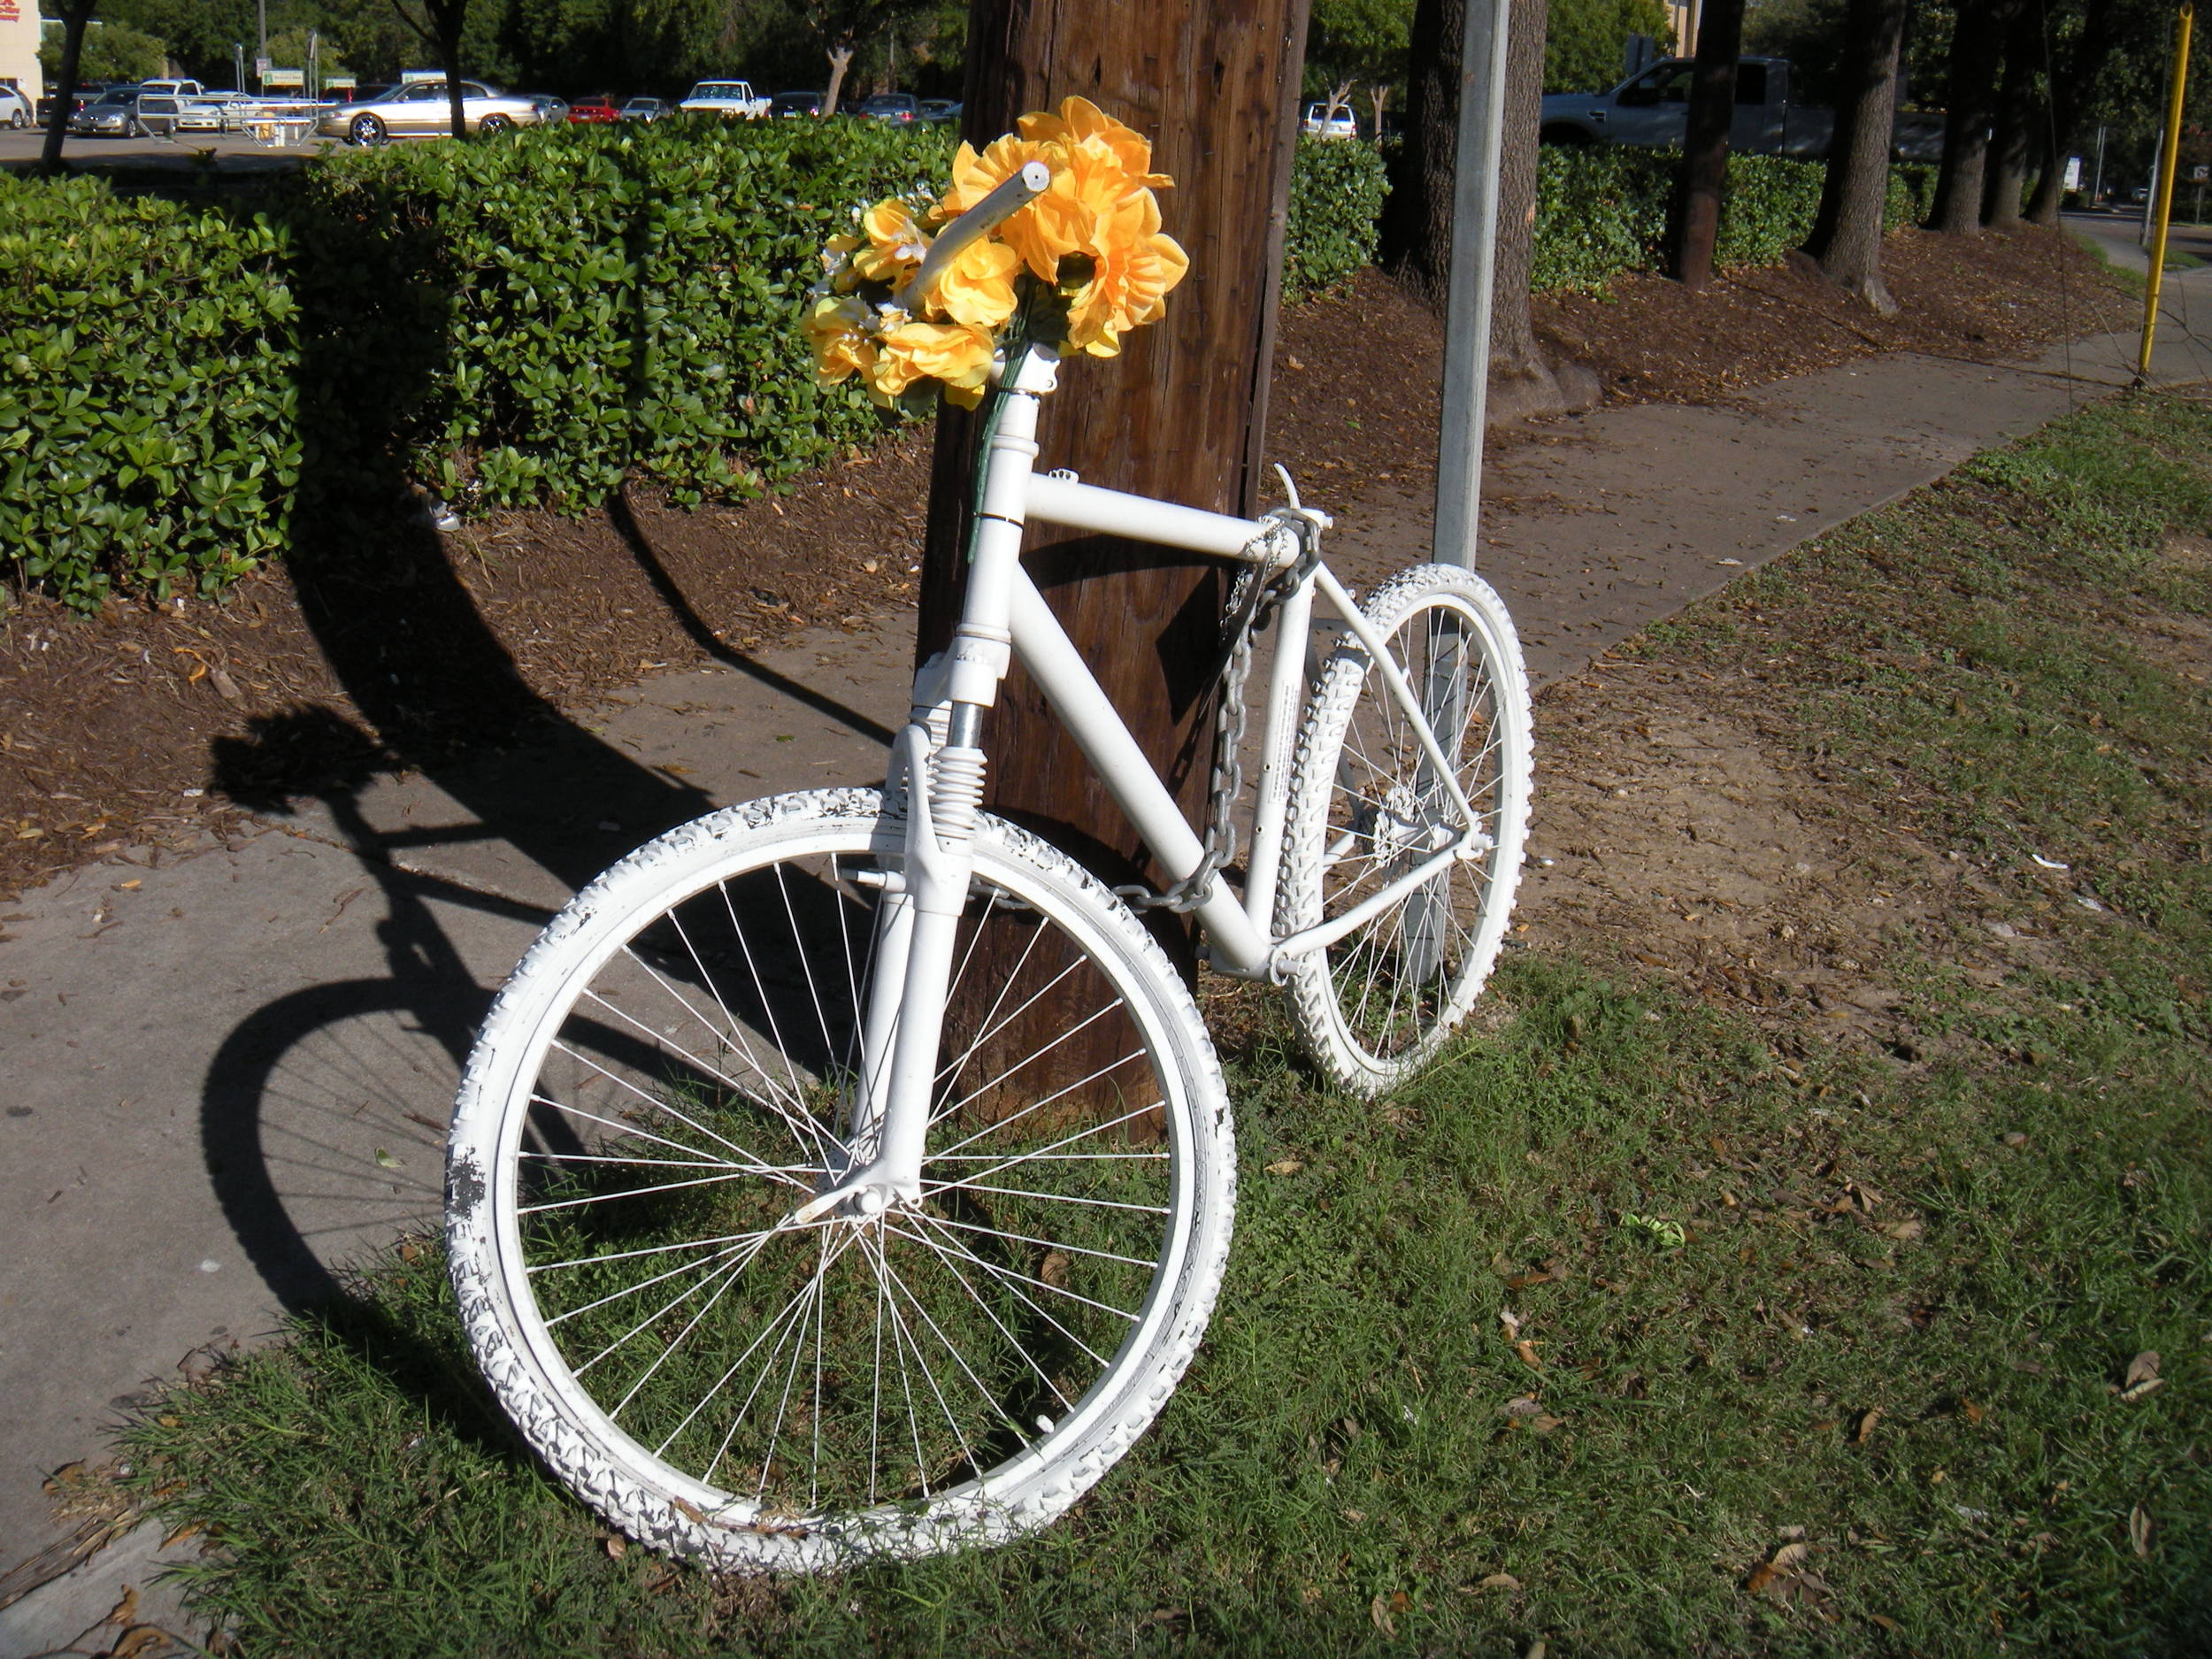 I've seen several of these white bicycles with flowers propped around town. Does anybody know why?